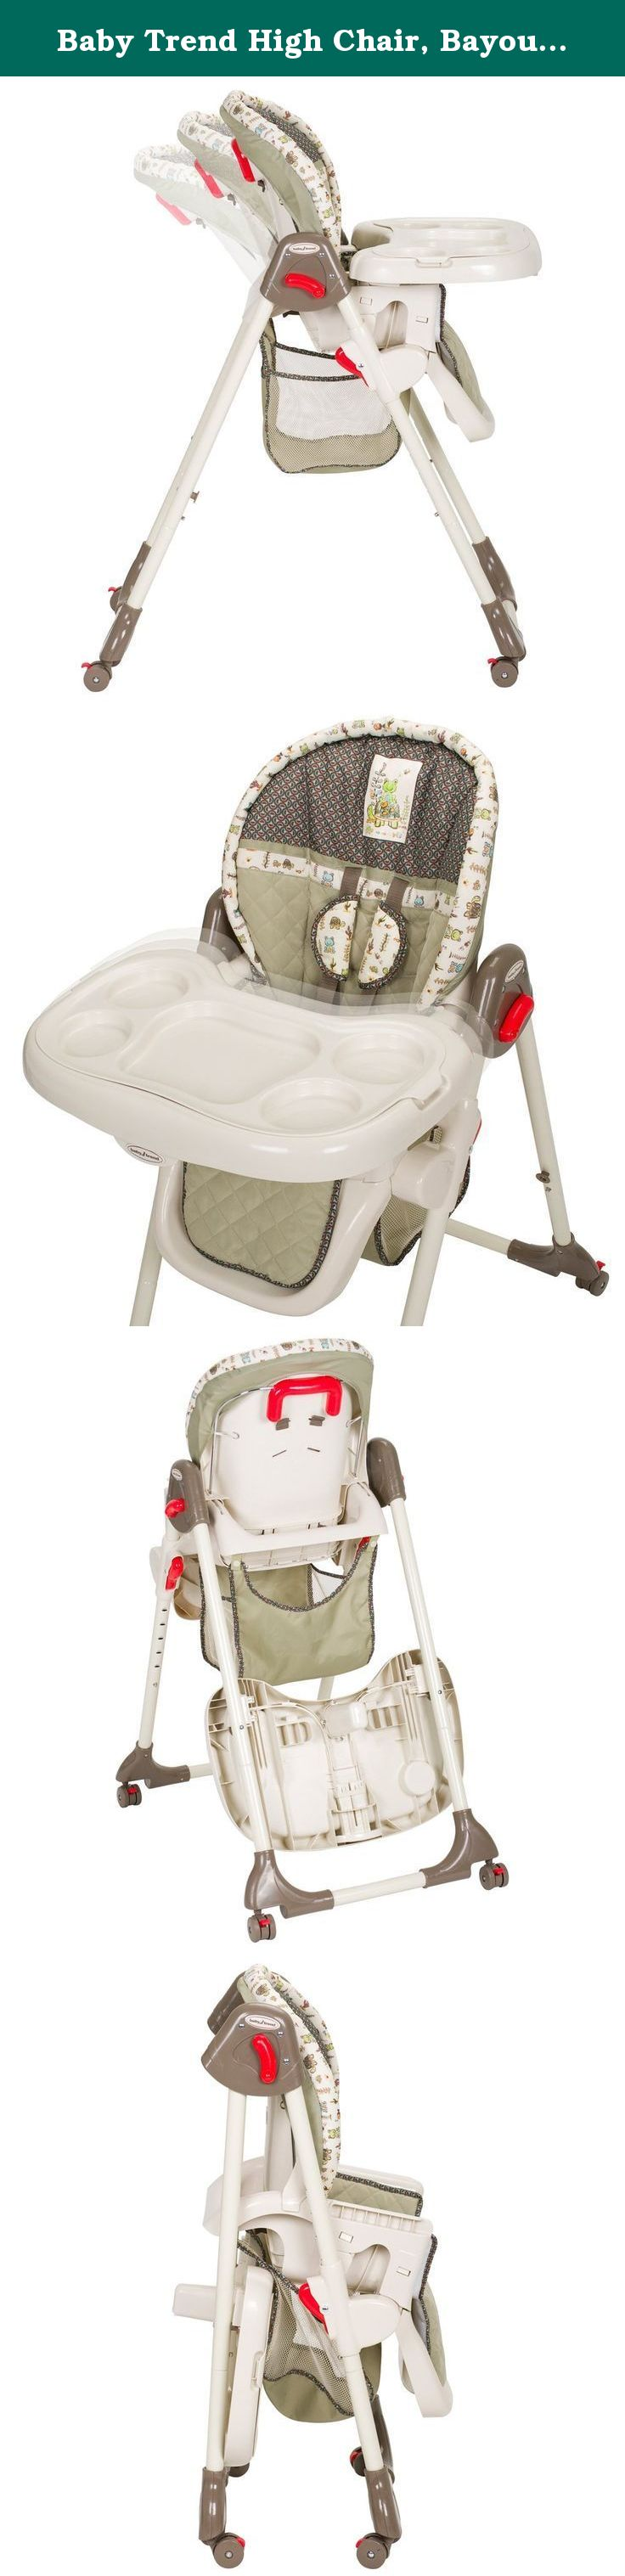 baby trend high chair recline covers online australia bayou friends the features a 3